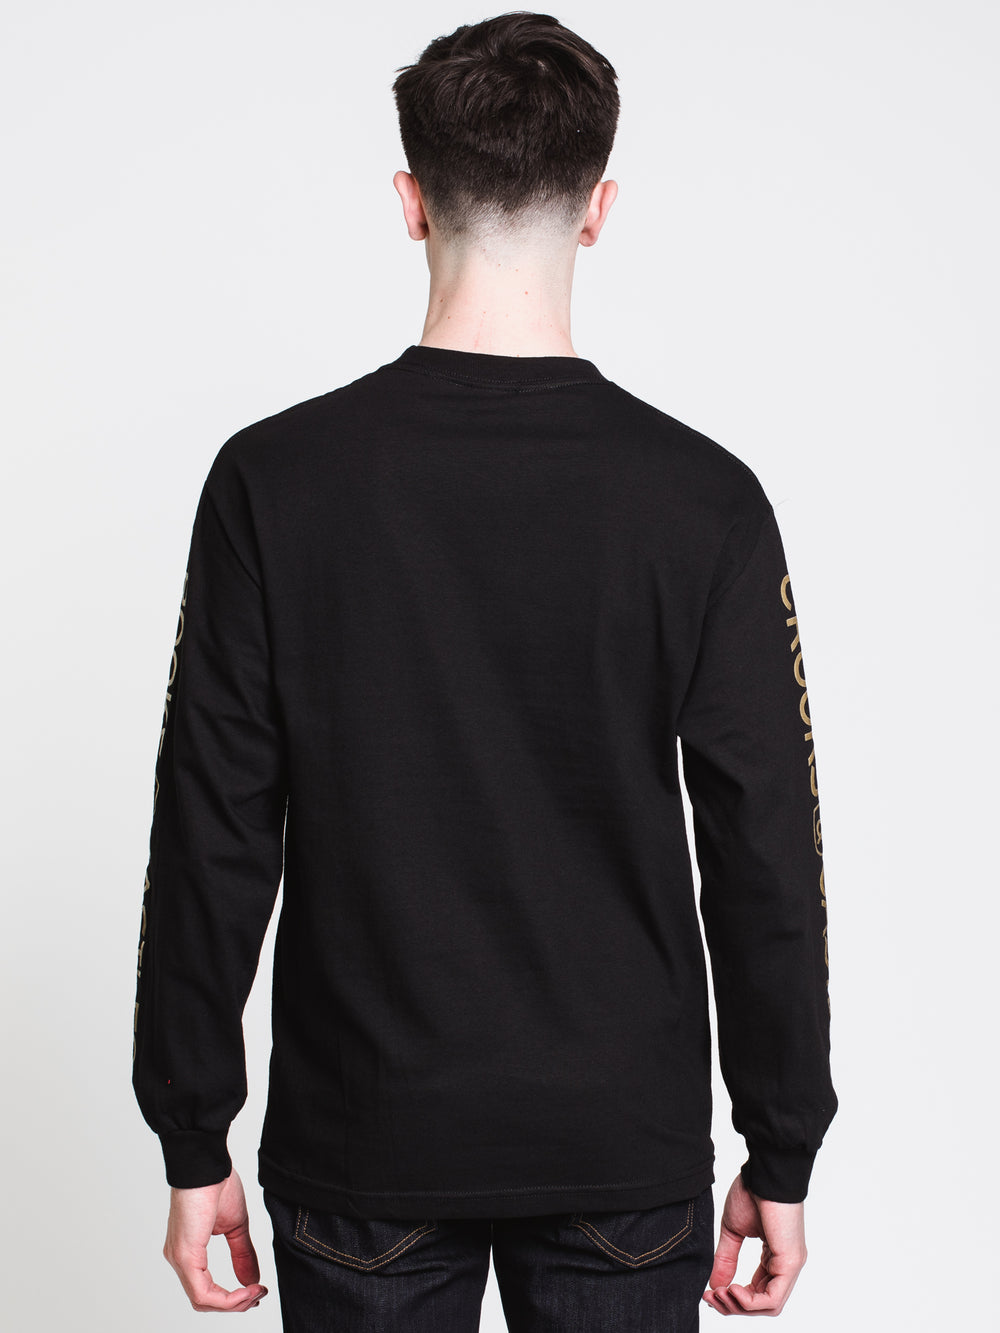 MENS GOLD DUEL SNAKES LONG SLEEVE T-SHIRT - BLACK